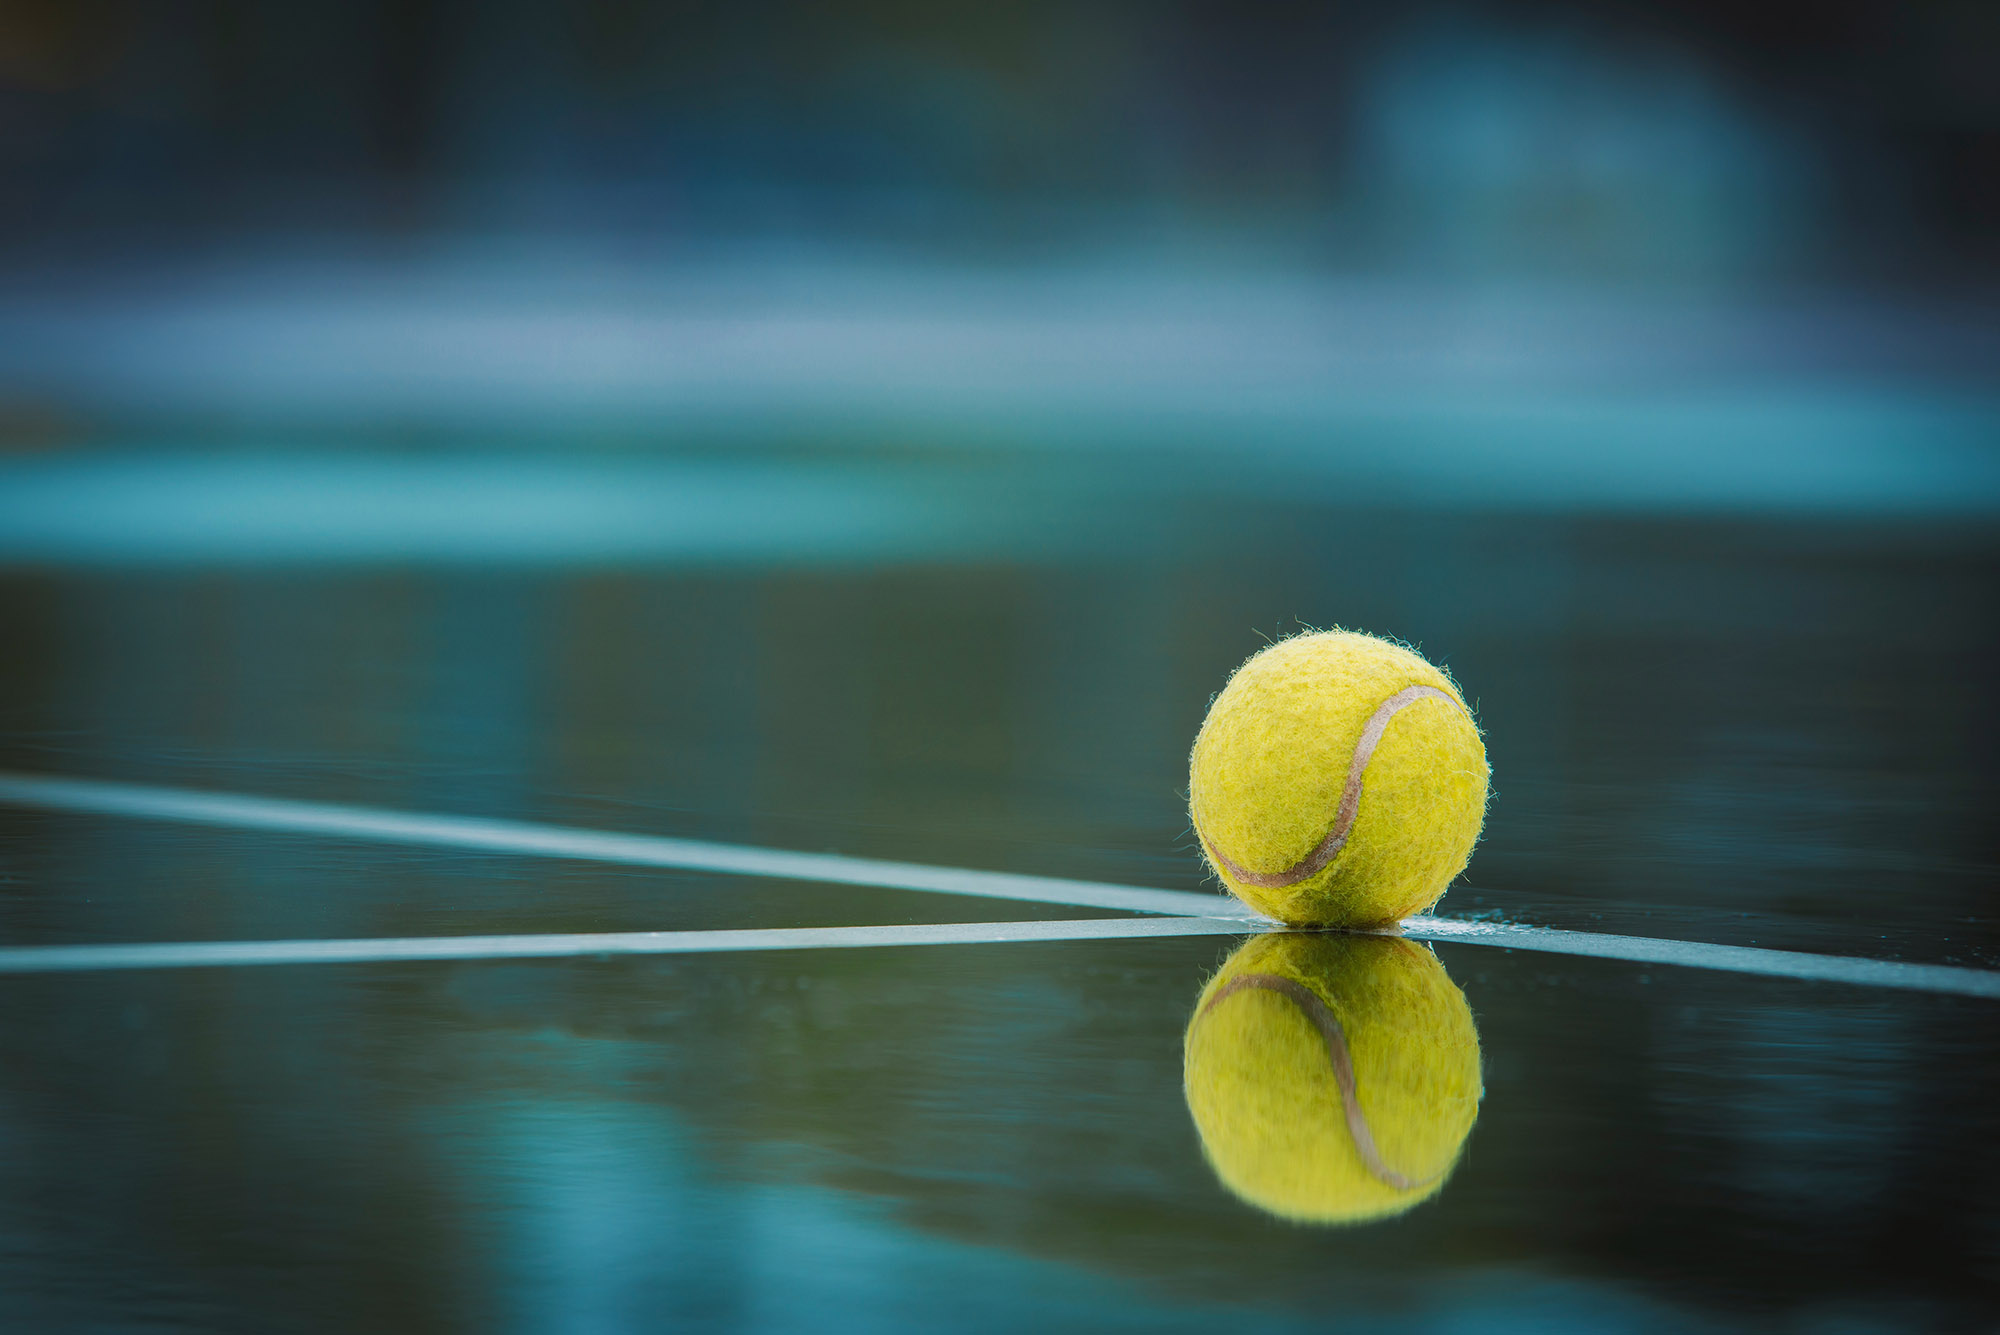 Tennis ball with reflection on surface of tennis court.